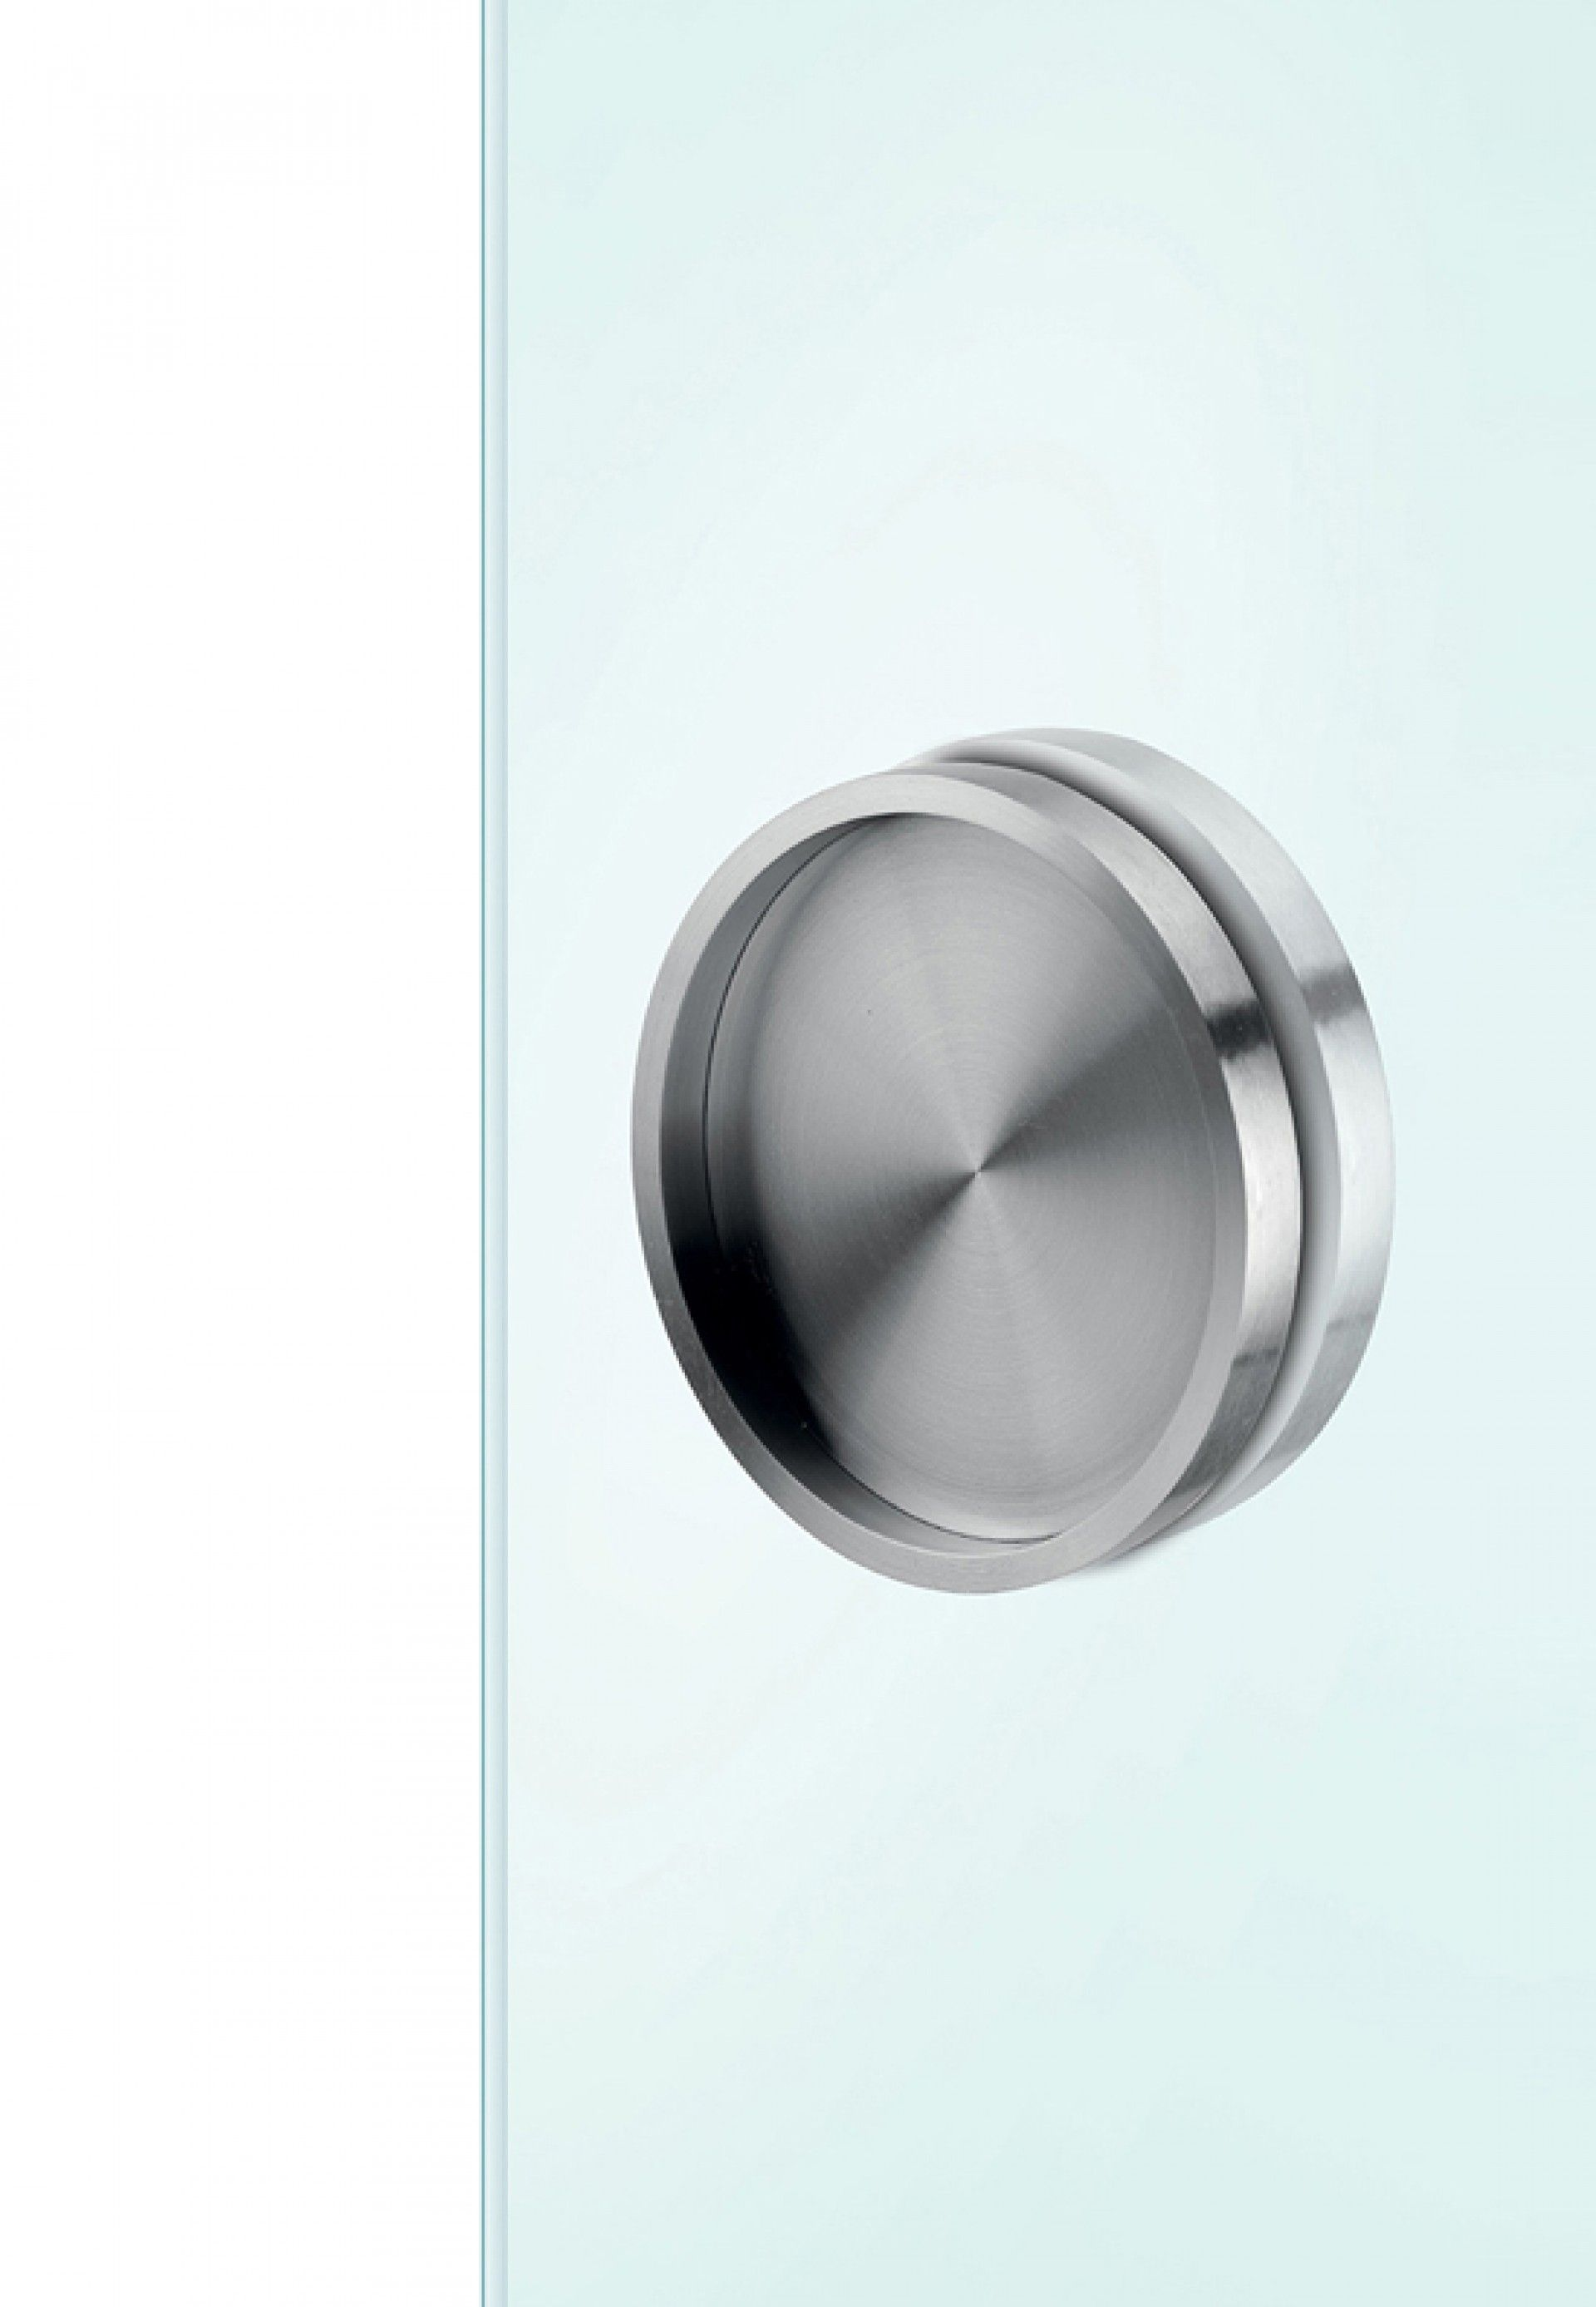 ARKITUR 100mm Diameter Self-Adhesive Sliding Door Handle